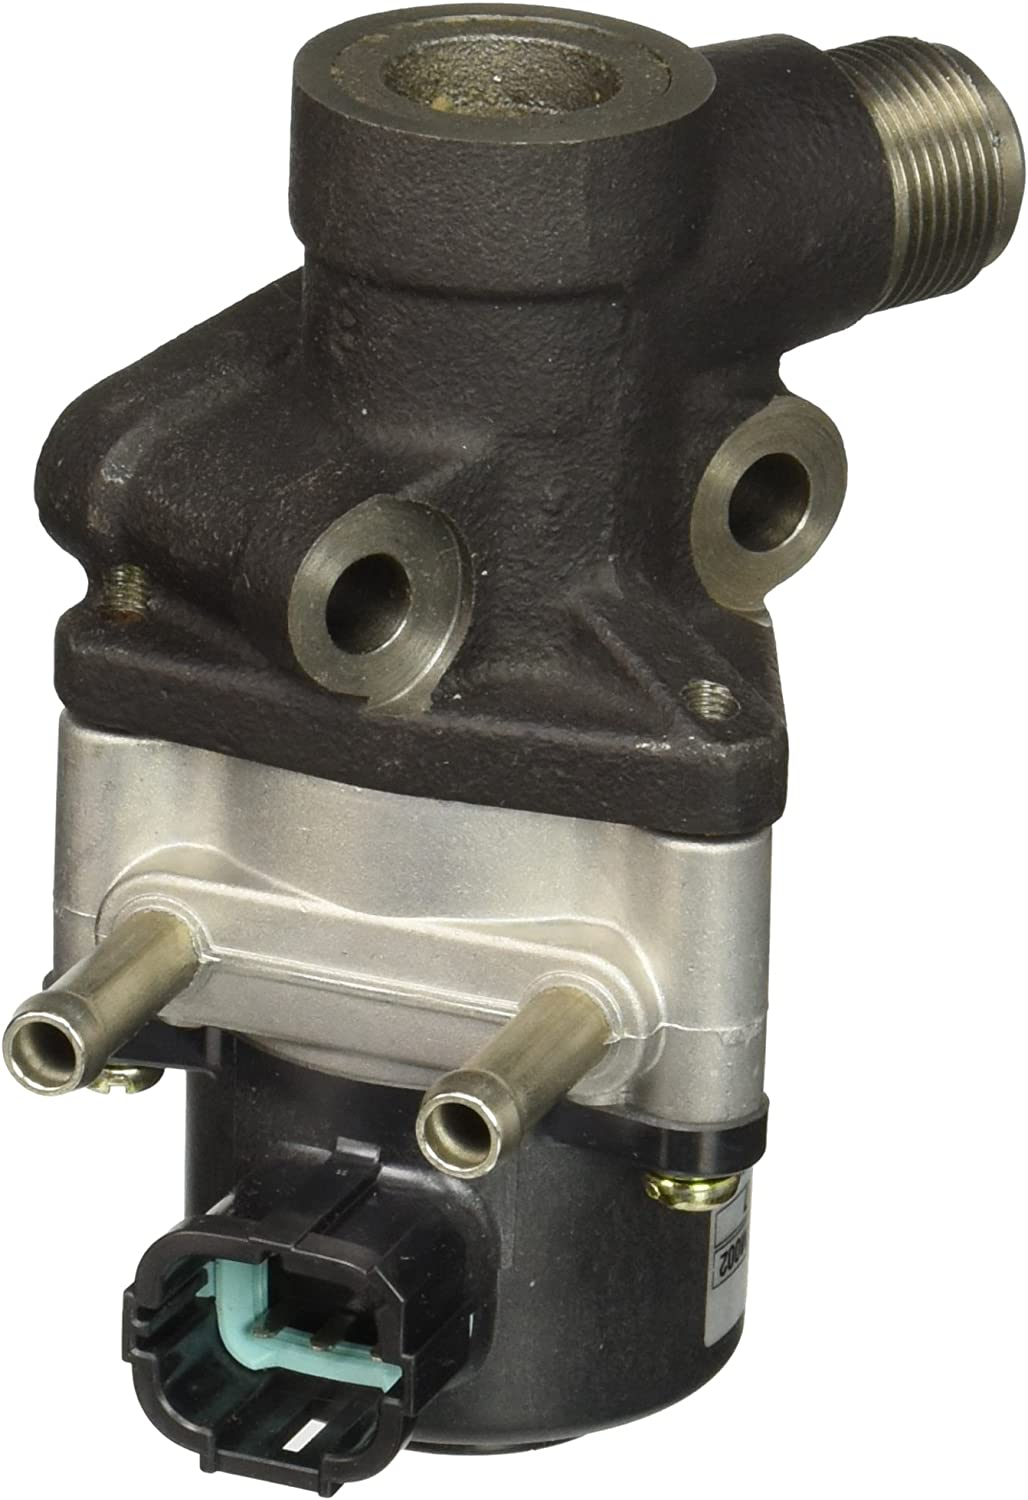 Standard Motor Products Max 85% OFF Valve All items in the store EGR EGV878